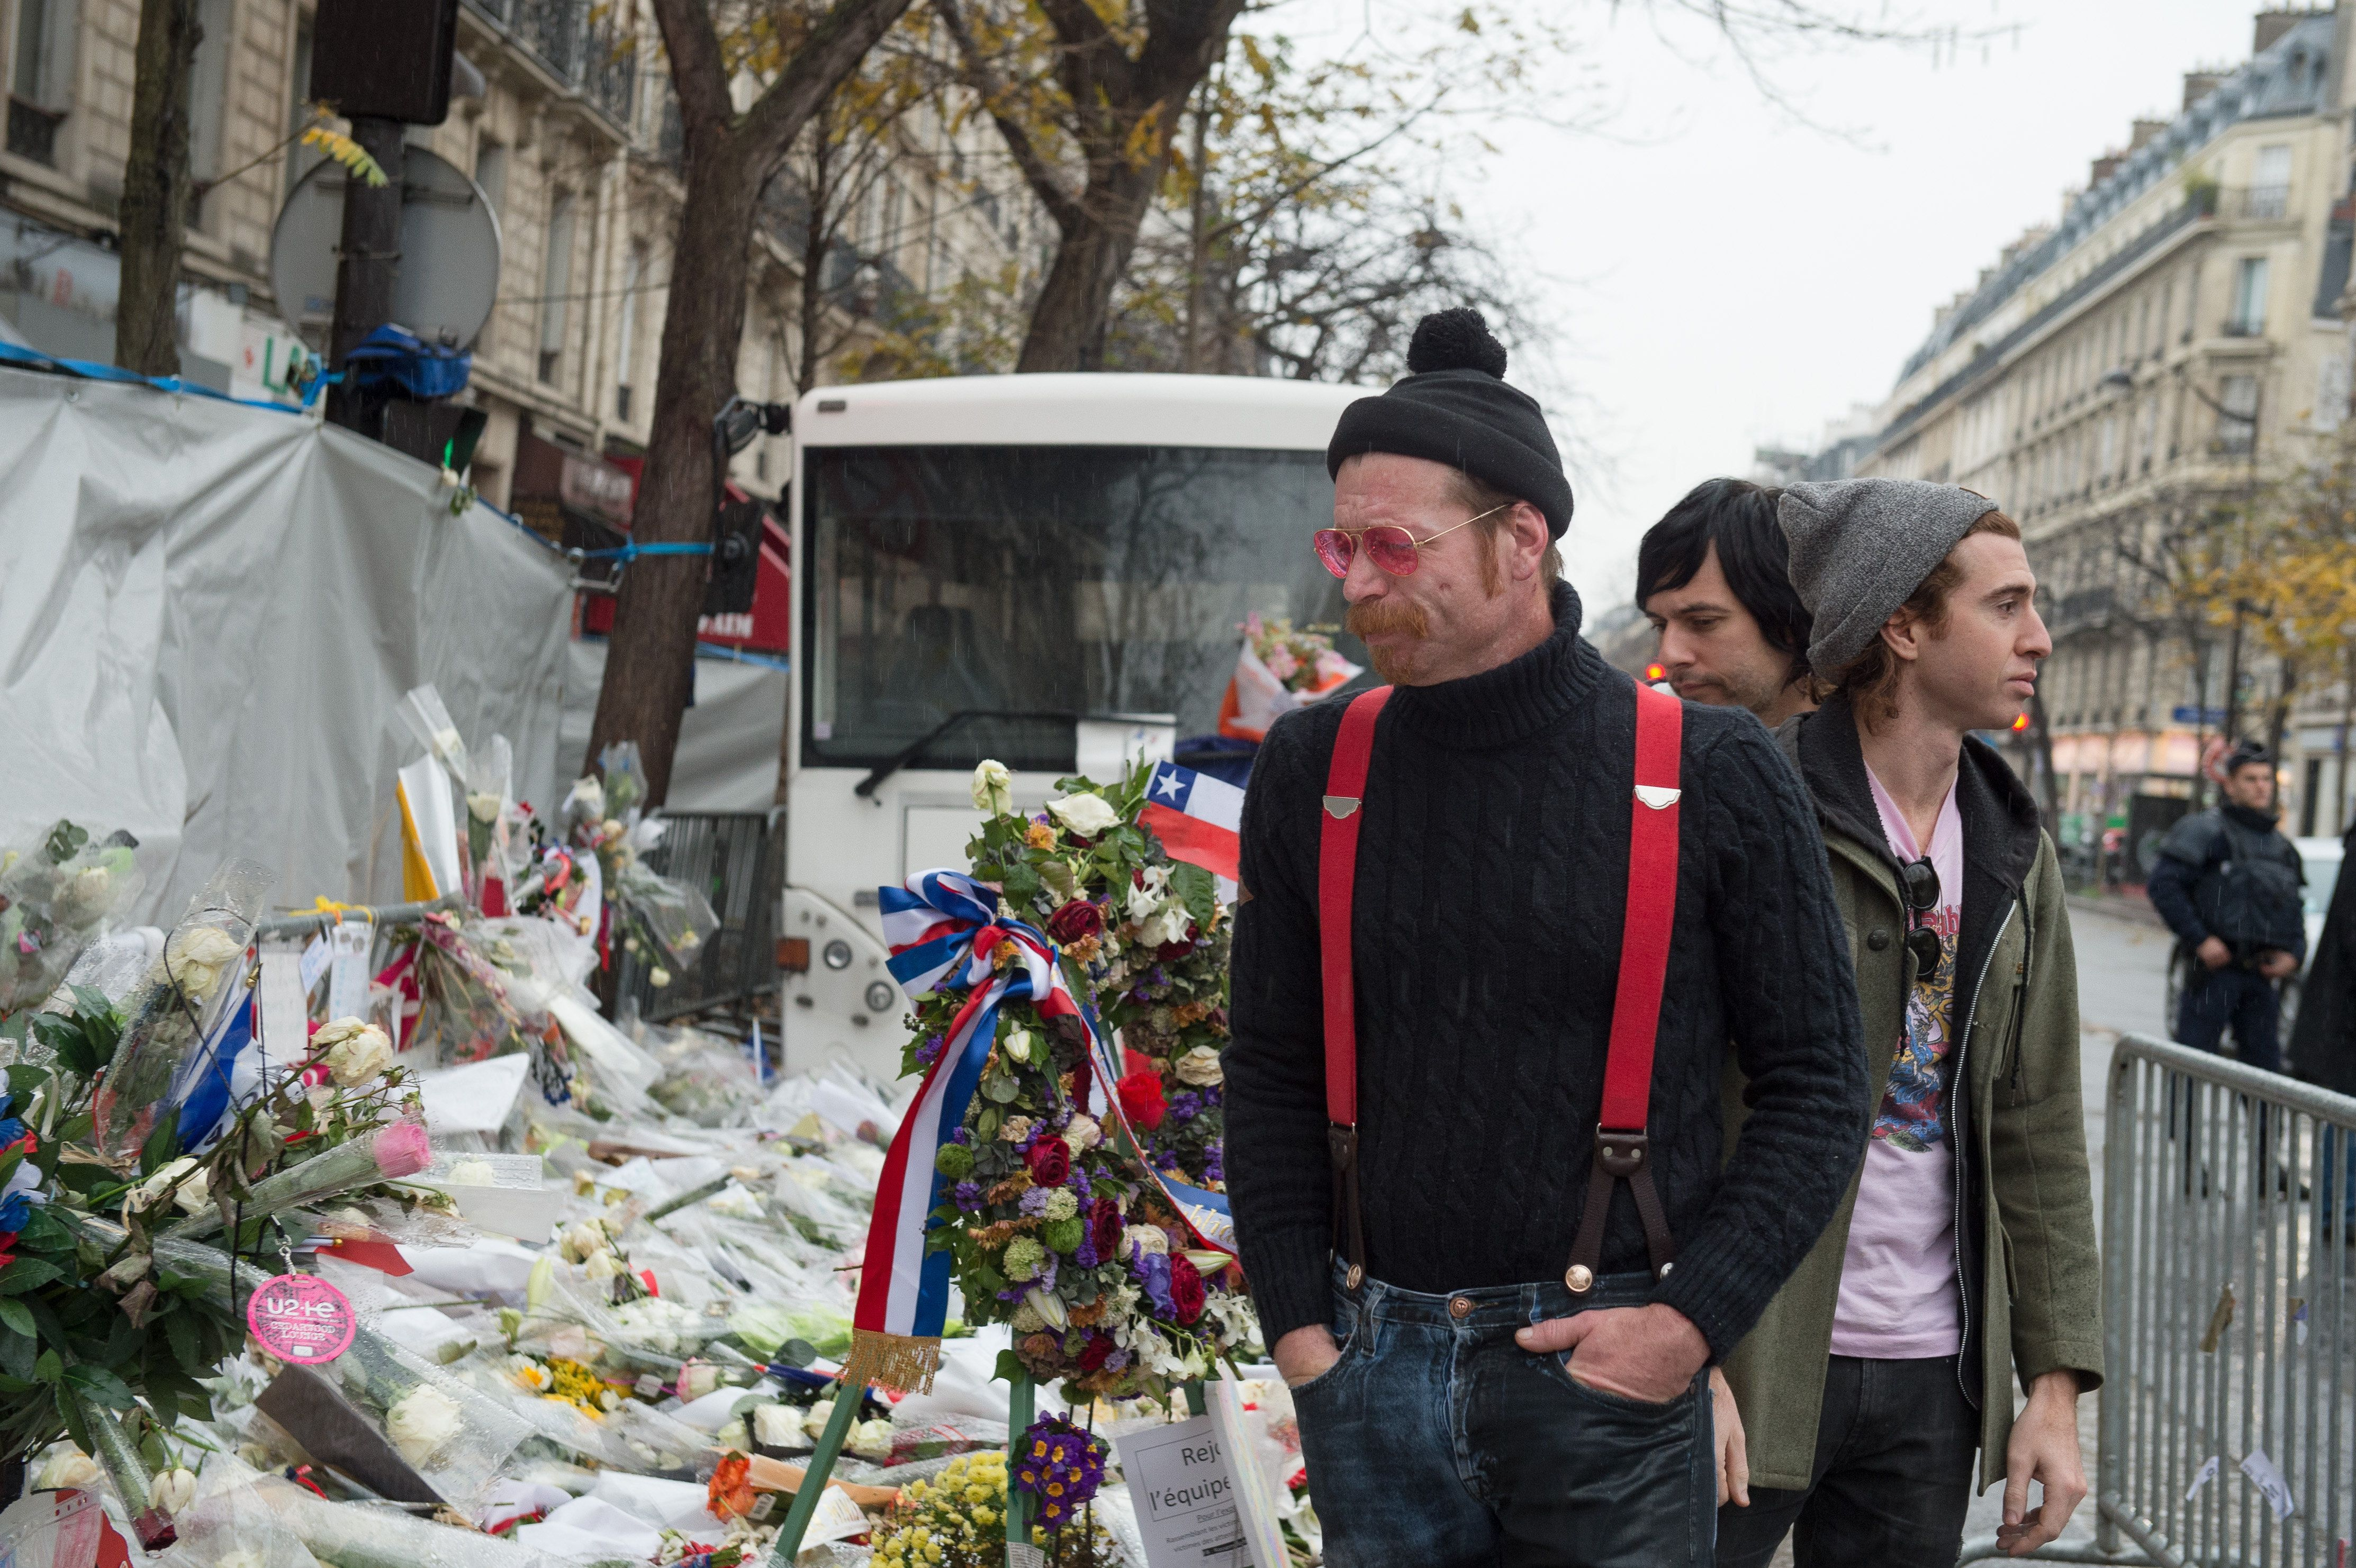 PARIS, FRANCE - DECEMBER 08:   Eagles of Death Metal frontman Jesse Hughes, guitarist Matt McJunkins and drummer Julian Dorio visit a memorial that pays homage to the victims of the terrorist attacks at Le Bataclan on December 8, 2015 in Paris, France.  The Eagles of Death Metal band returned to the Bataclan concert hall for the first time since the deadly terrorist attacks on November 13th where 130 people lost their lives and many more were injured. (Photo by David Wolff - Patrick/Getty Images)